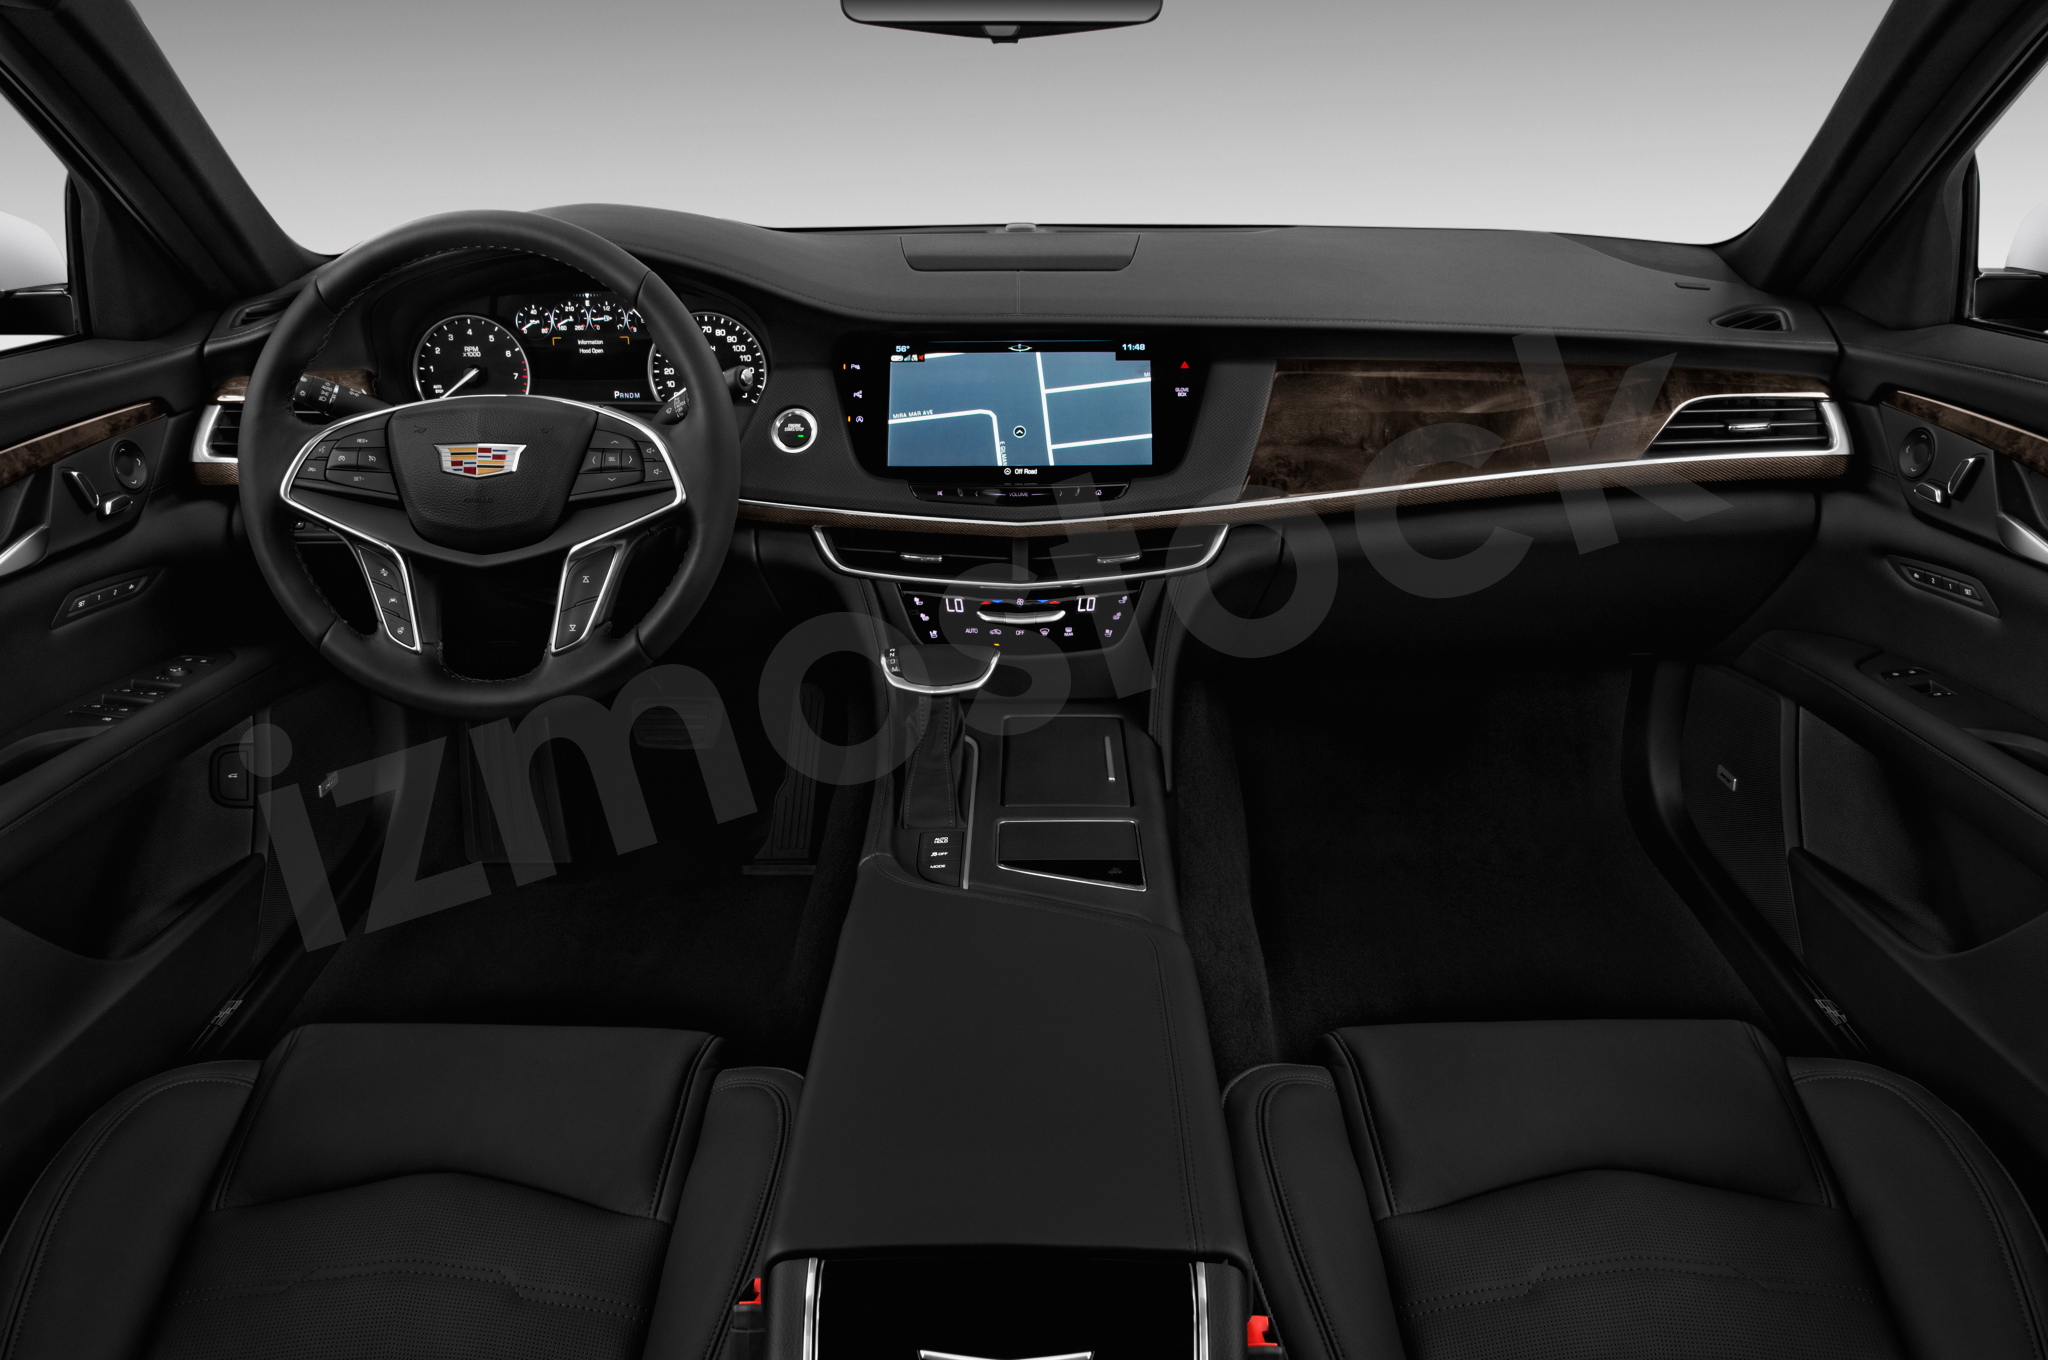 cadillac_17ct6sa1a_dashboard